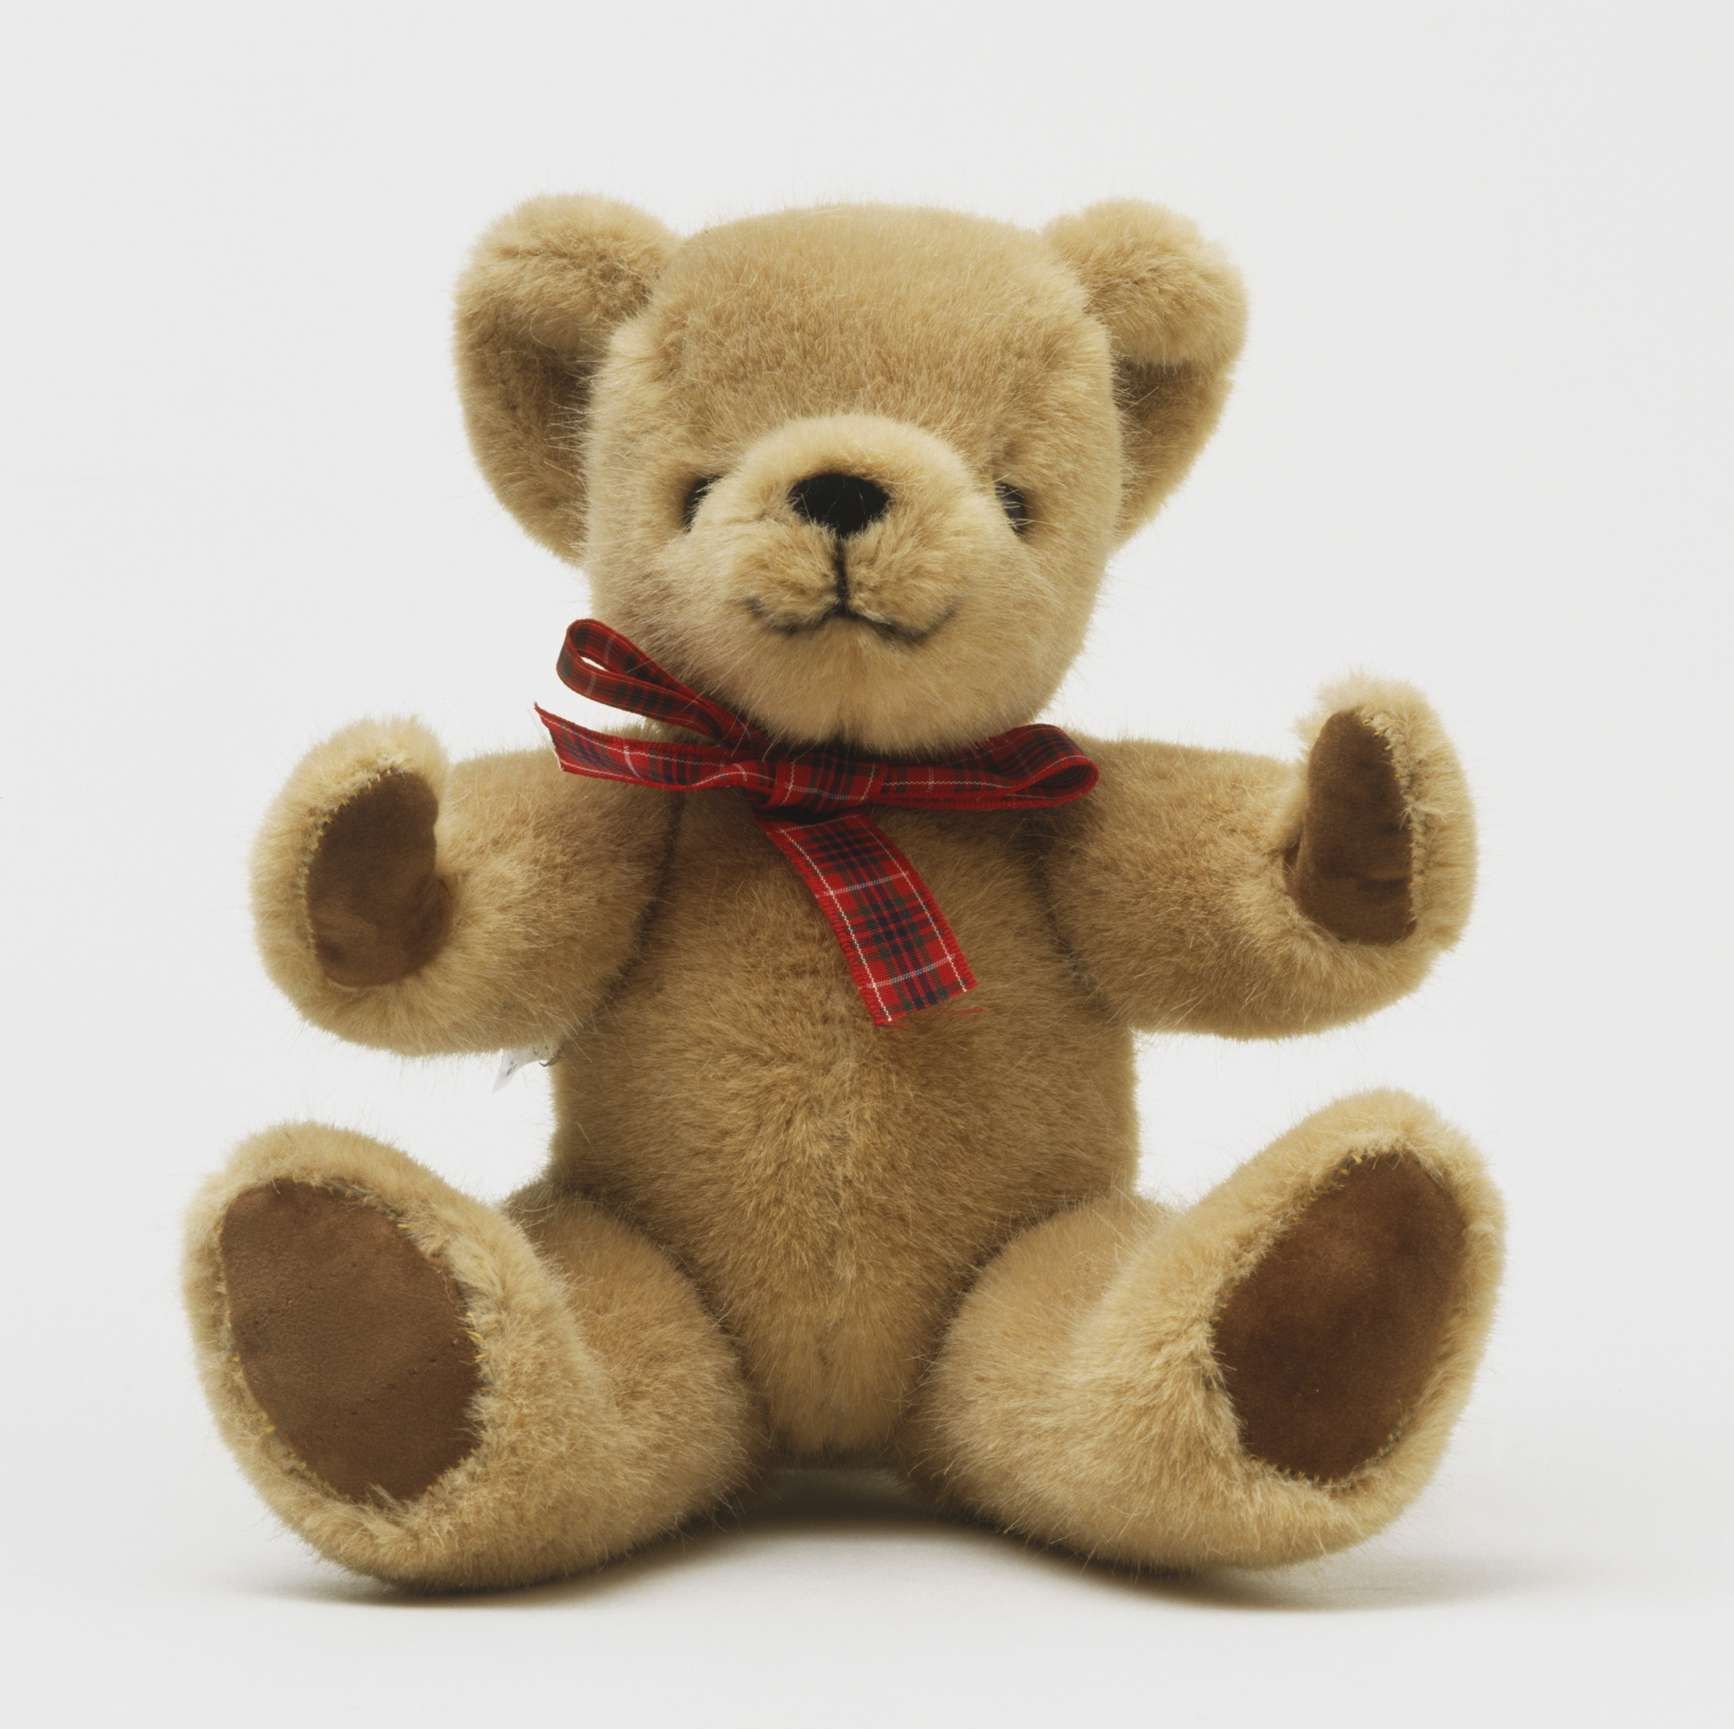 Sew Your Own Teddy Bears With These Free Patterns